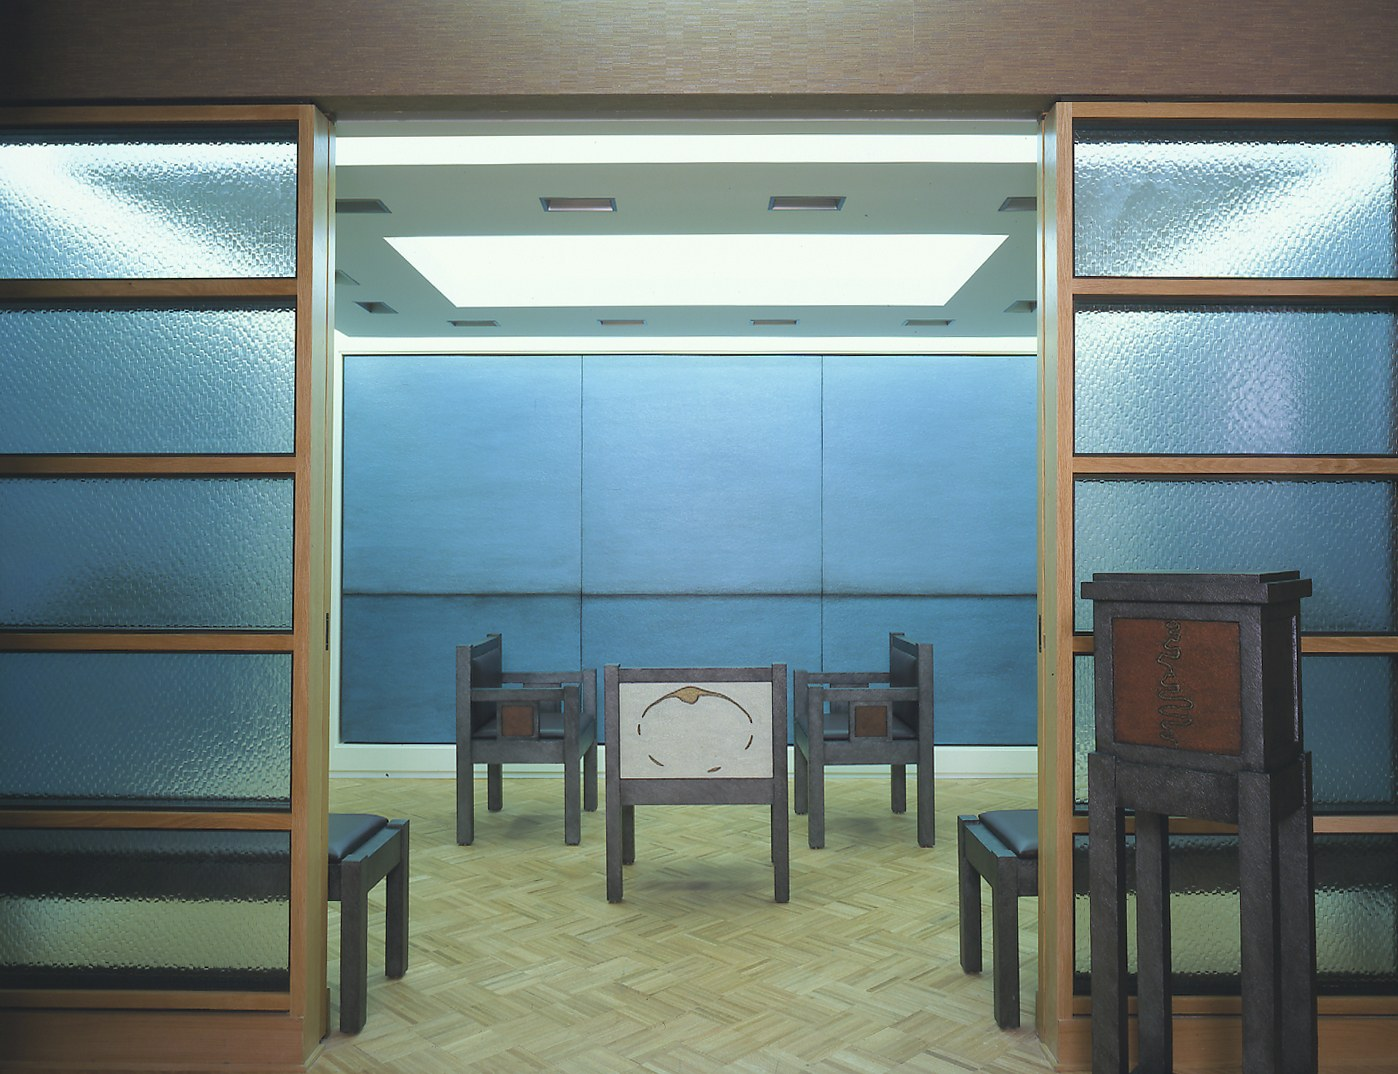 Tobi%20Kahn_EMET_2002,%20Meditative%20Space%20Installation;%20Nine%20panels,%20acrylic%20on%20canvas%20over%20wood,%20three%20chairs,%20four%20benches%20and%20one%20bookstand,%20acrylic%20on%20wood.jpg